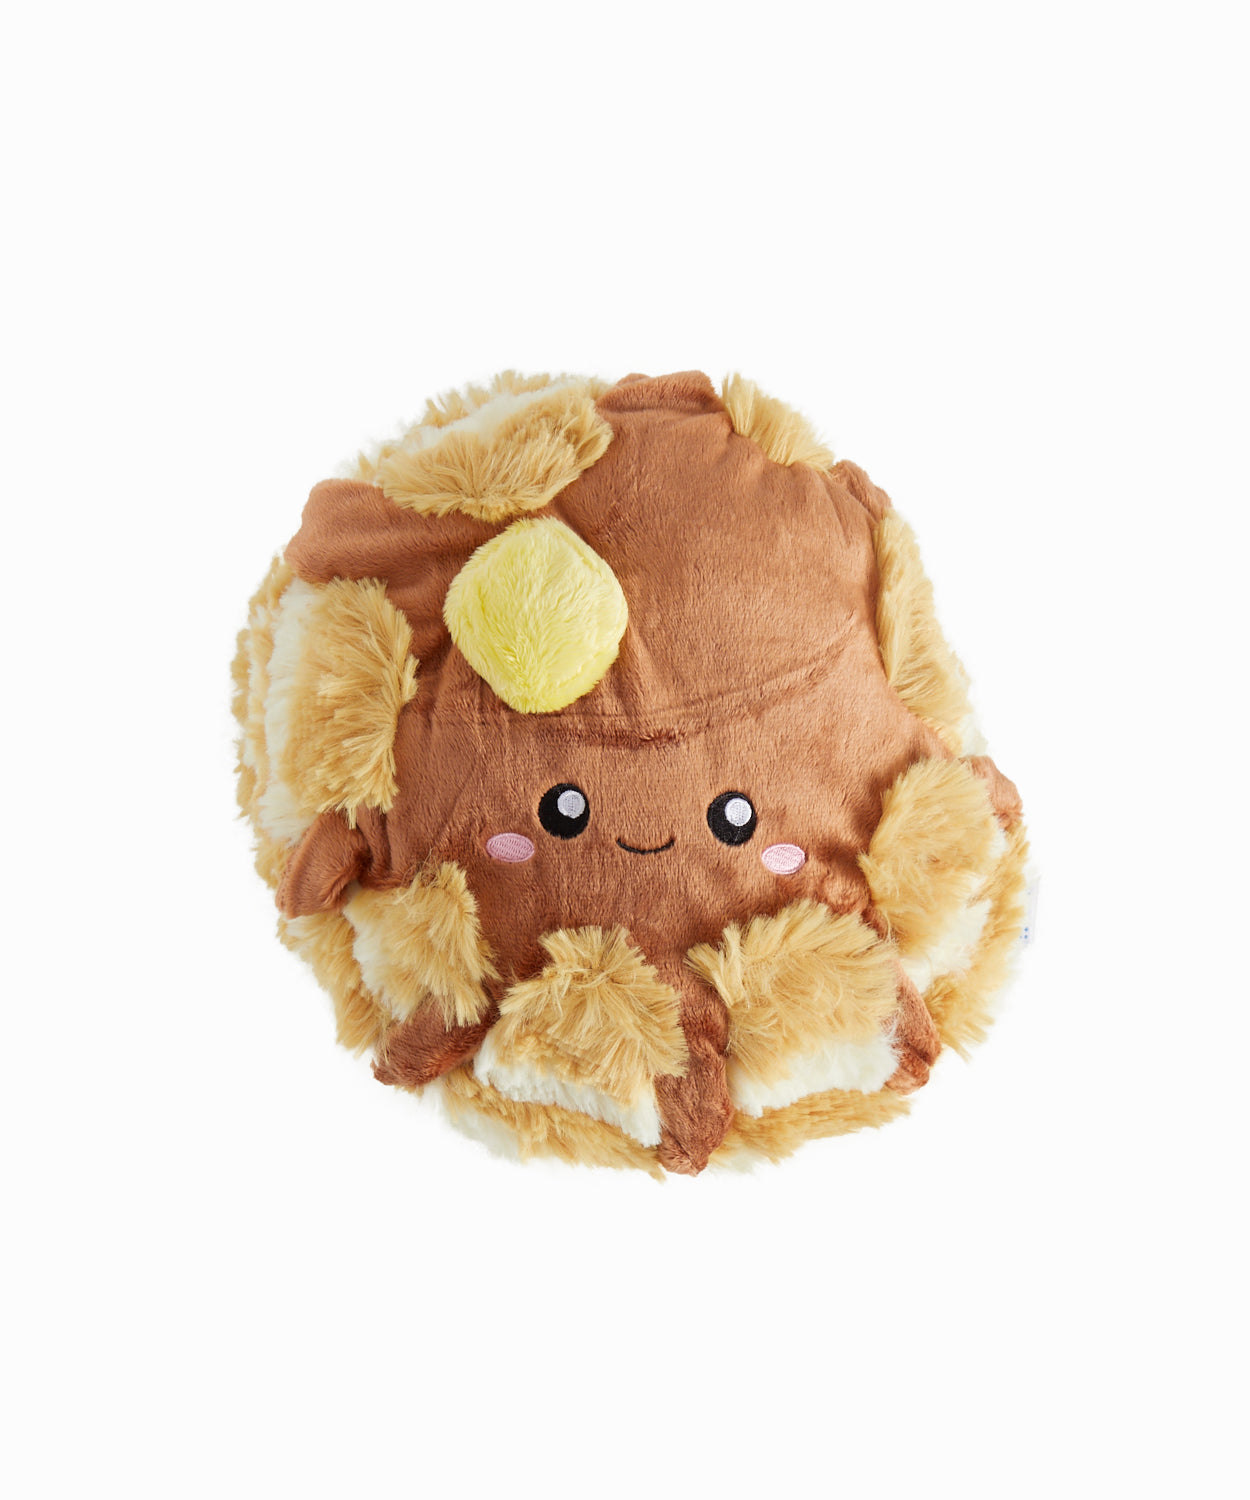 Pancakes Squishable